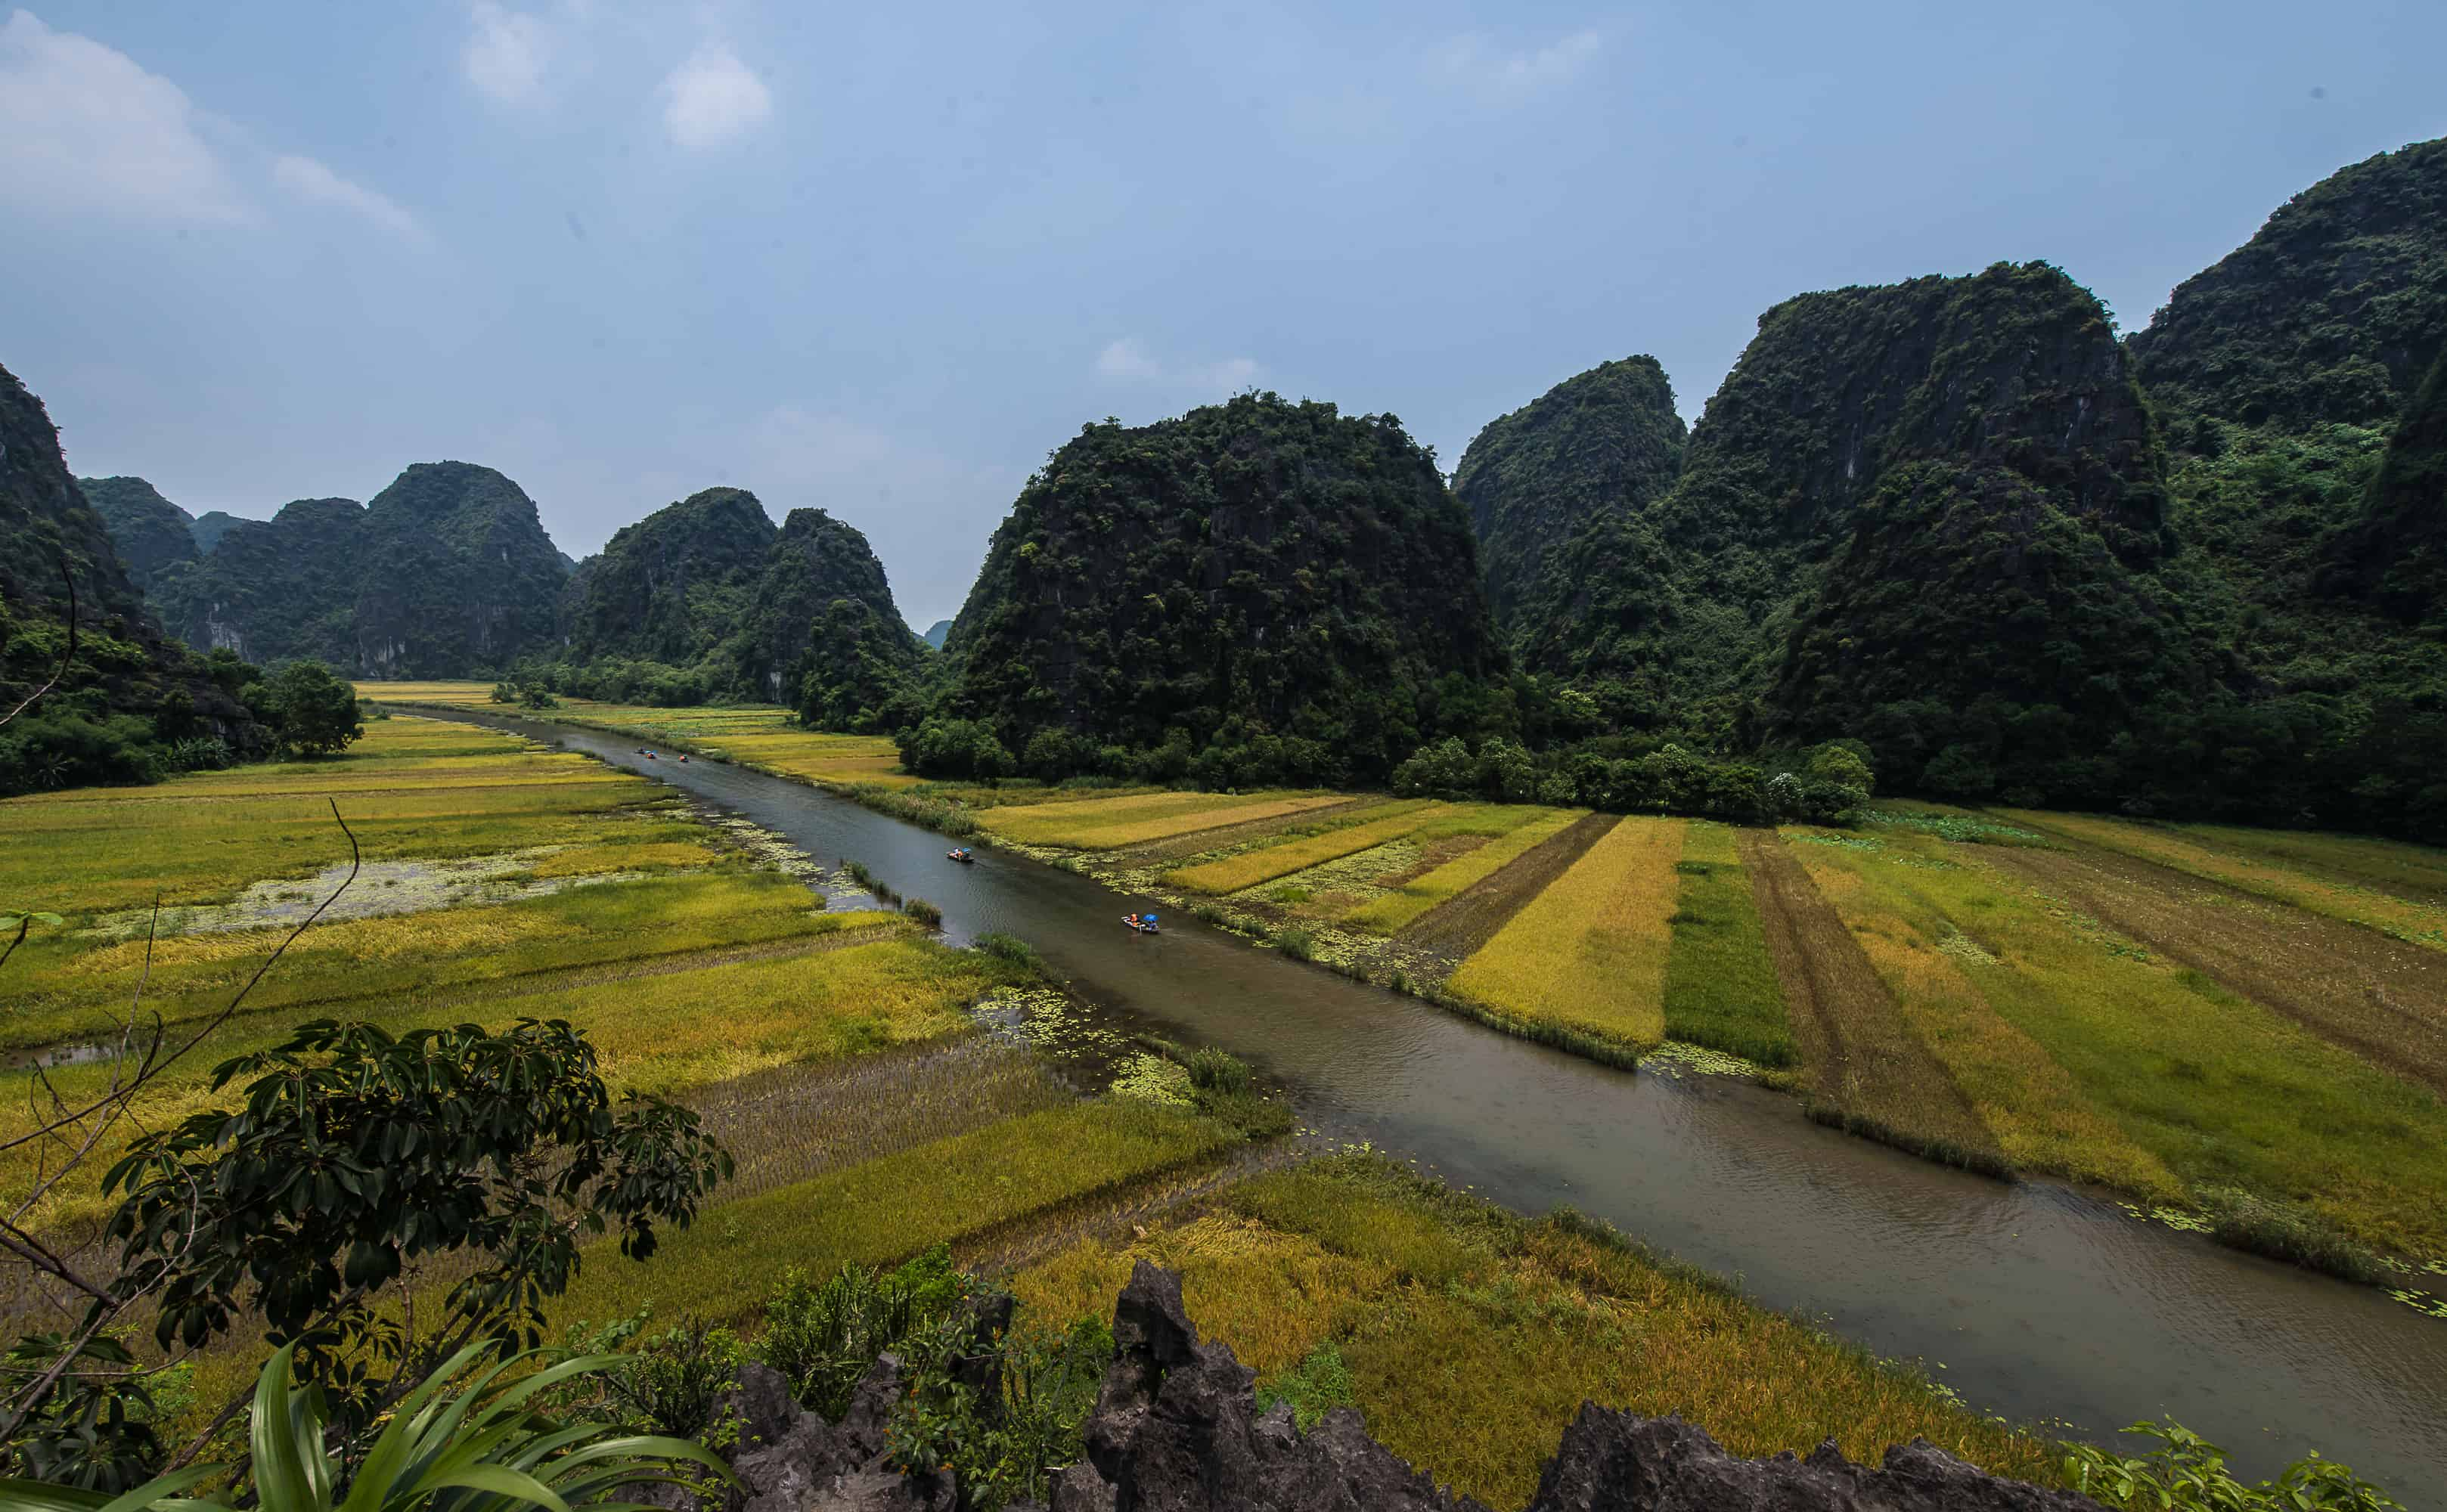 Trang An ecosystem the UNESCO's World Heritage Site also known as 'inland Halong Bay'